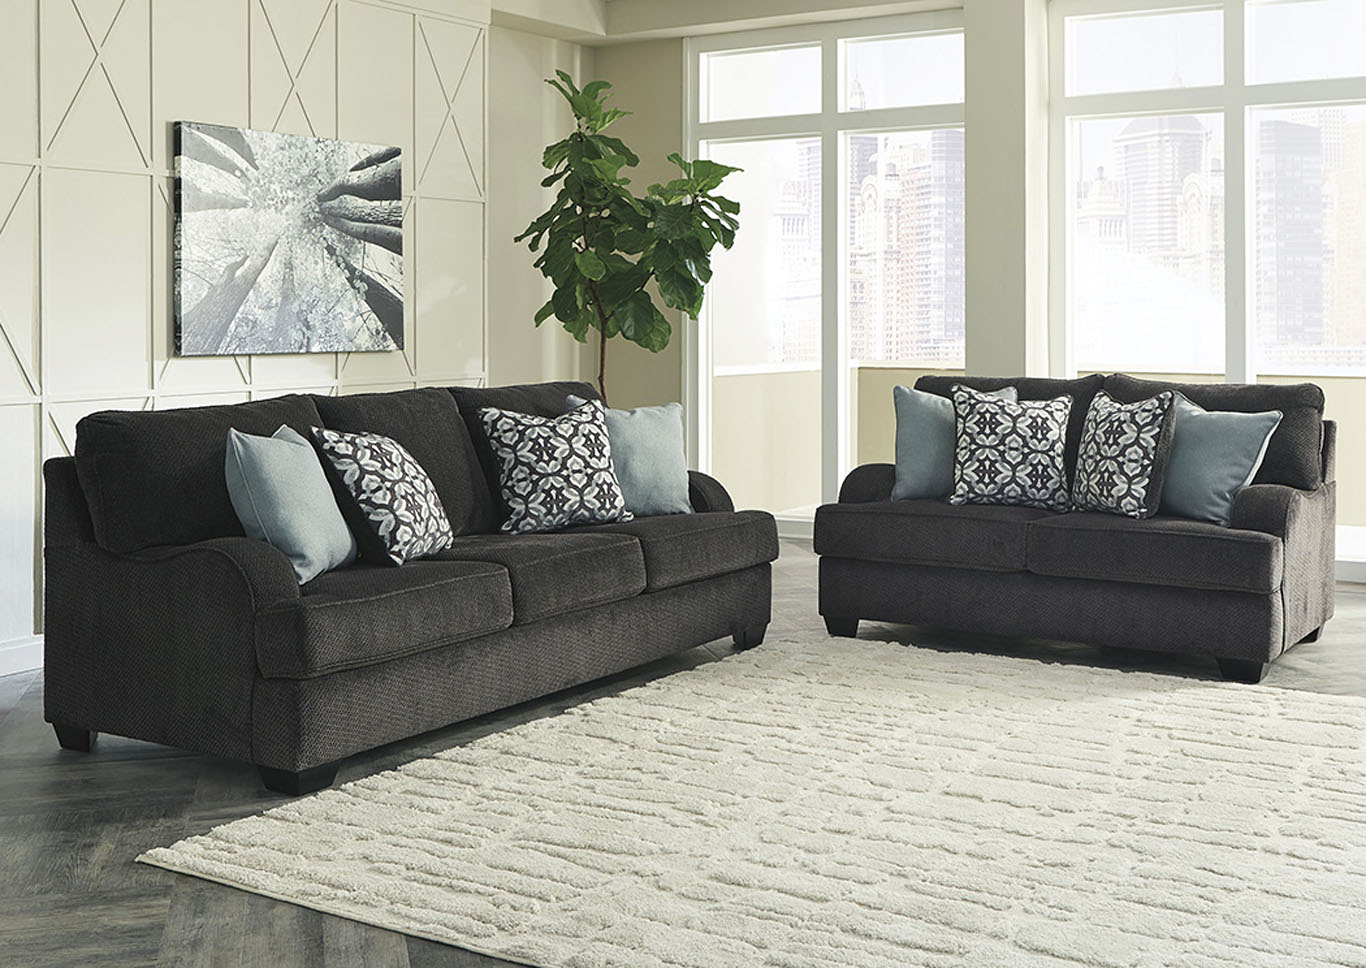 Charenton Charcoal Sofa & Loveseat,Benchcraft